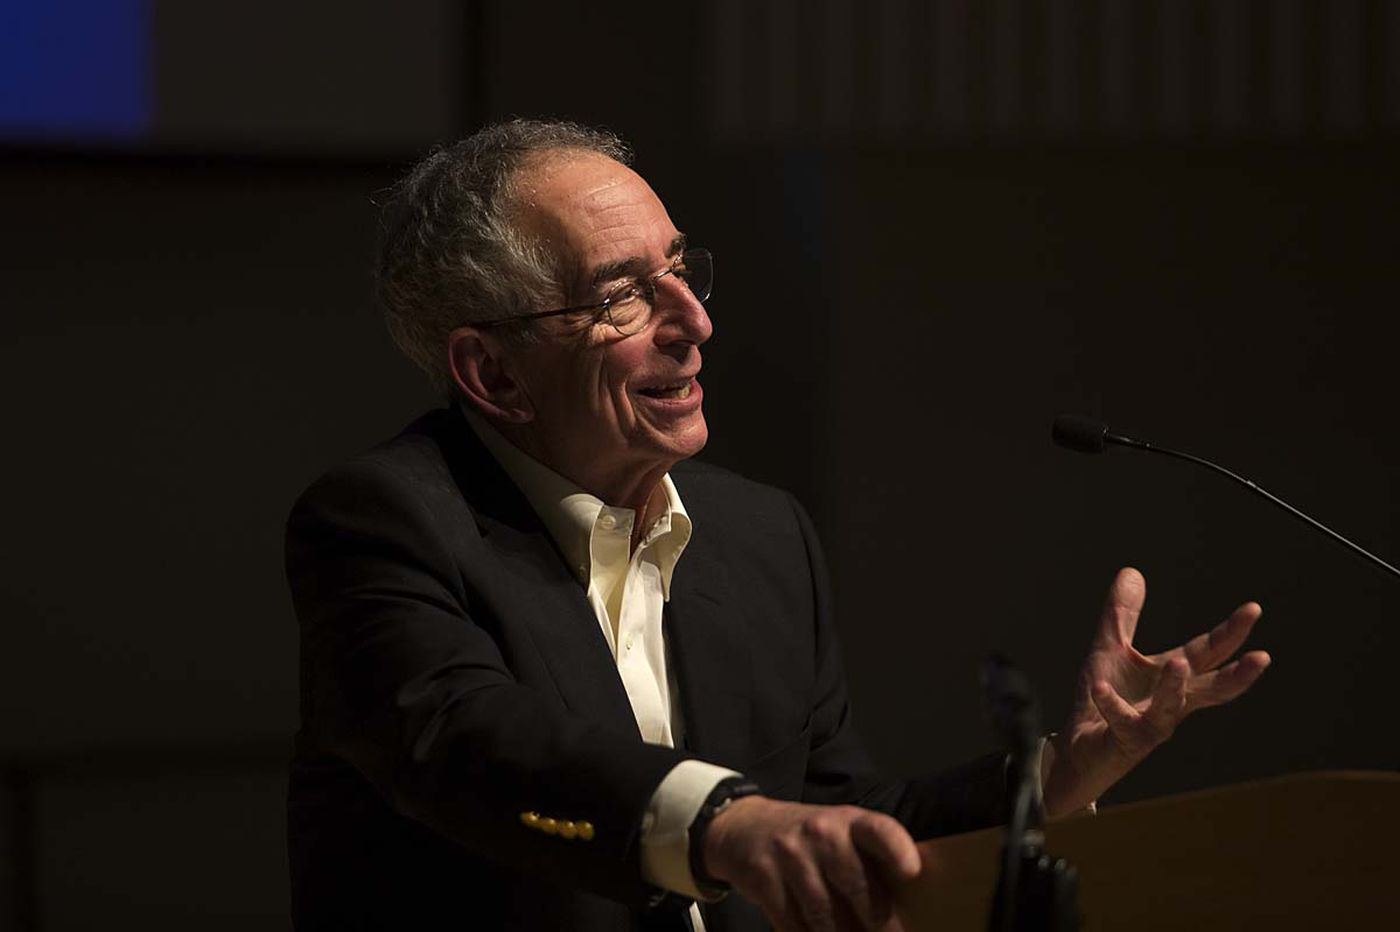 Swarthmore colleagues, students choose to honor an expert on choices